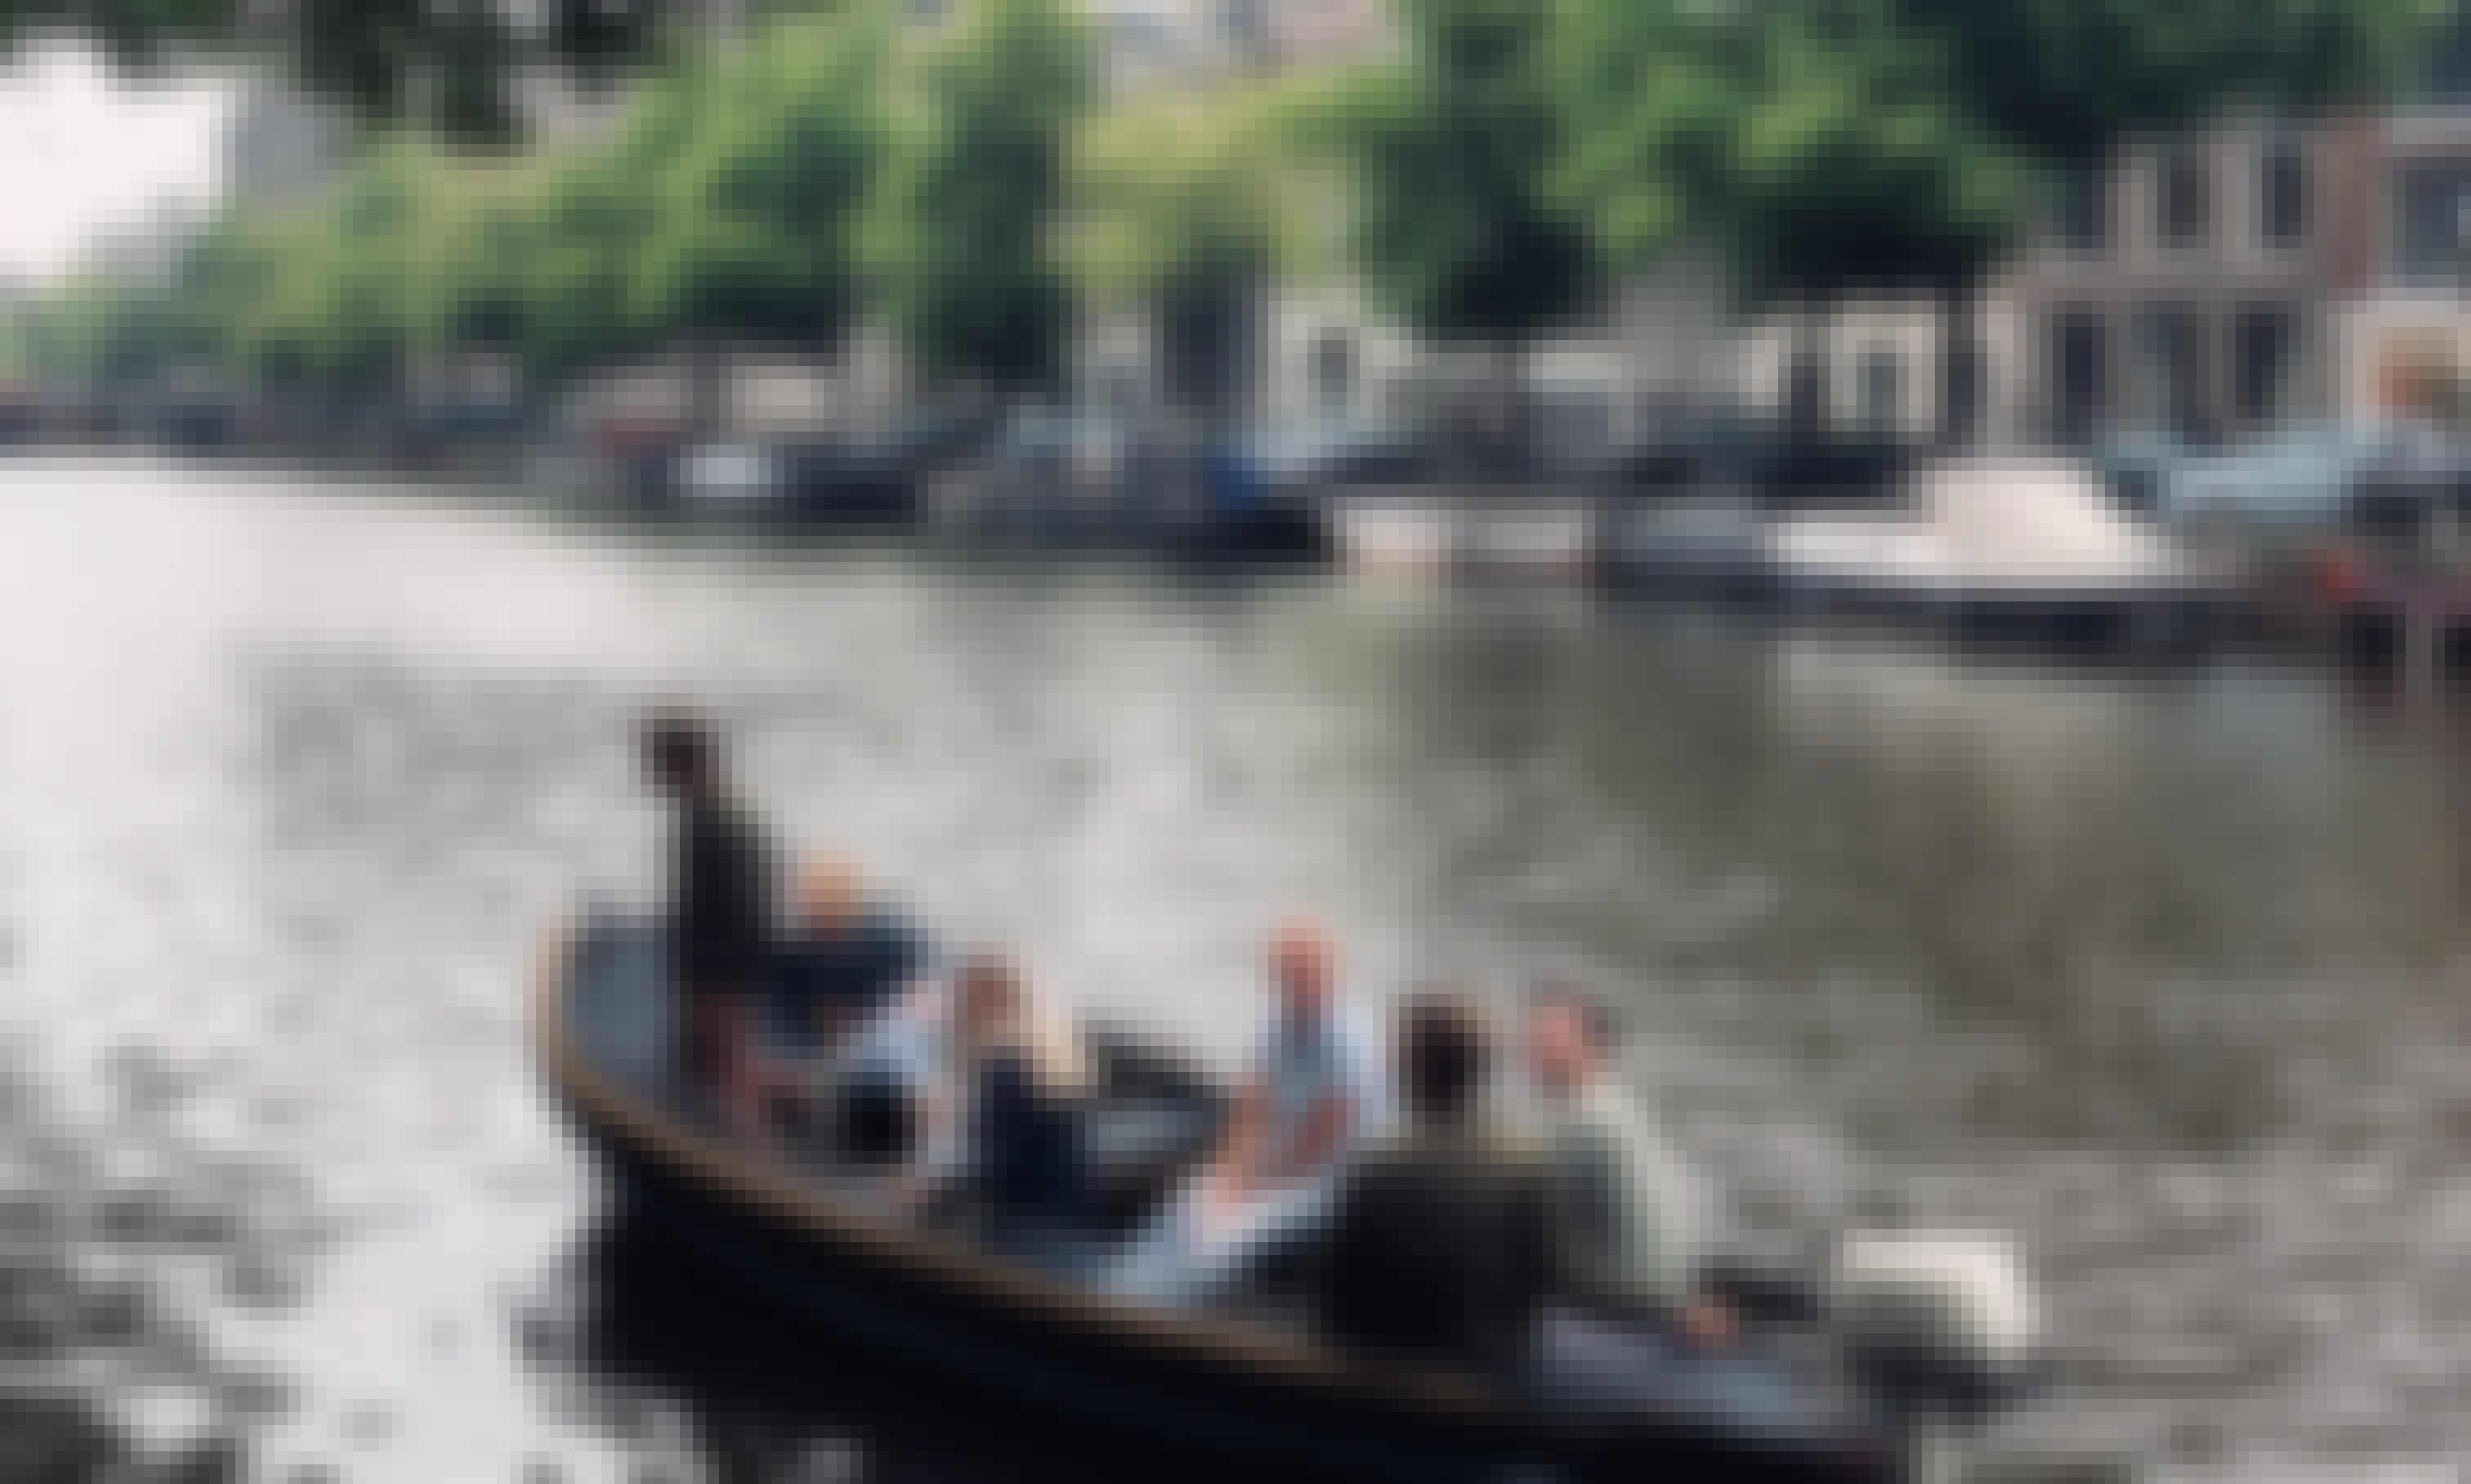 Rent a 18 ft steel canal boat for 9 people in Amsterdam, Netherlands